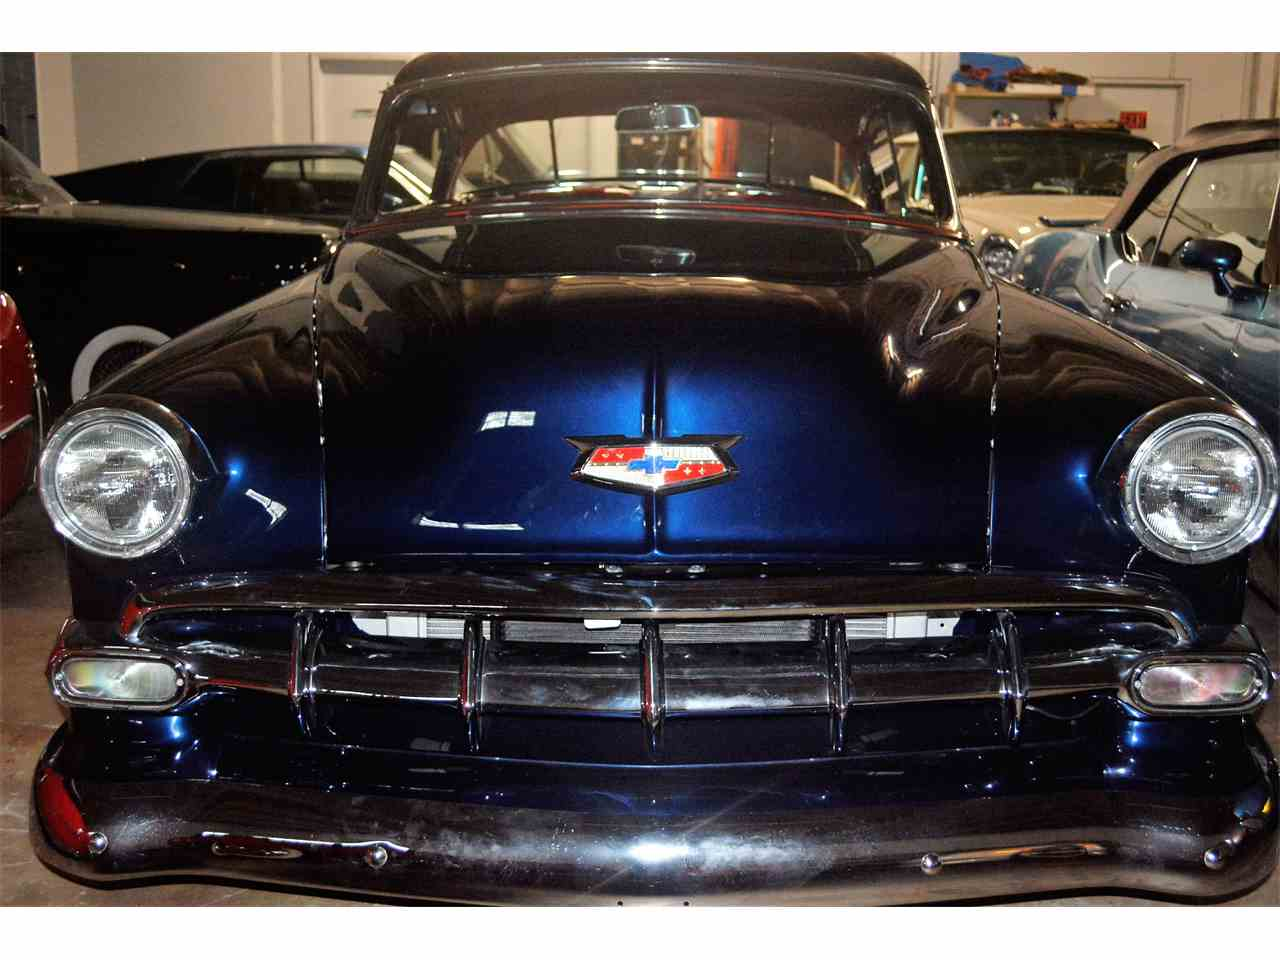 All Chevy 1954 chevy : 1954 Chevrolet Bel Air for Sale on ClassicCars.com - 22 Available